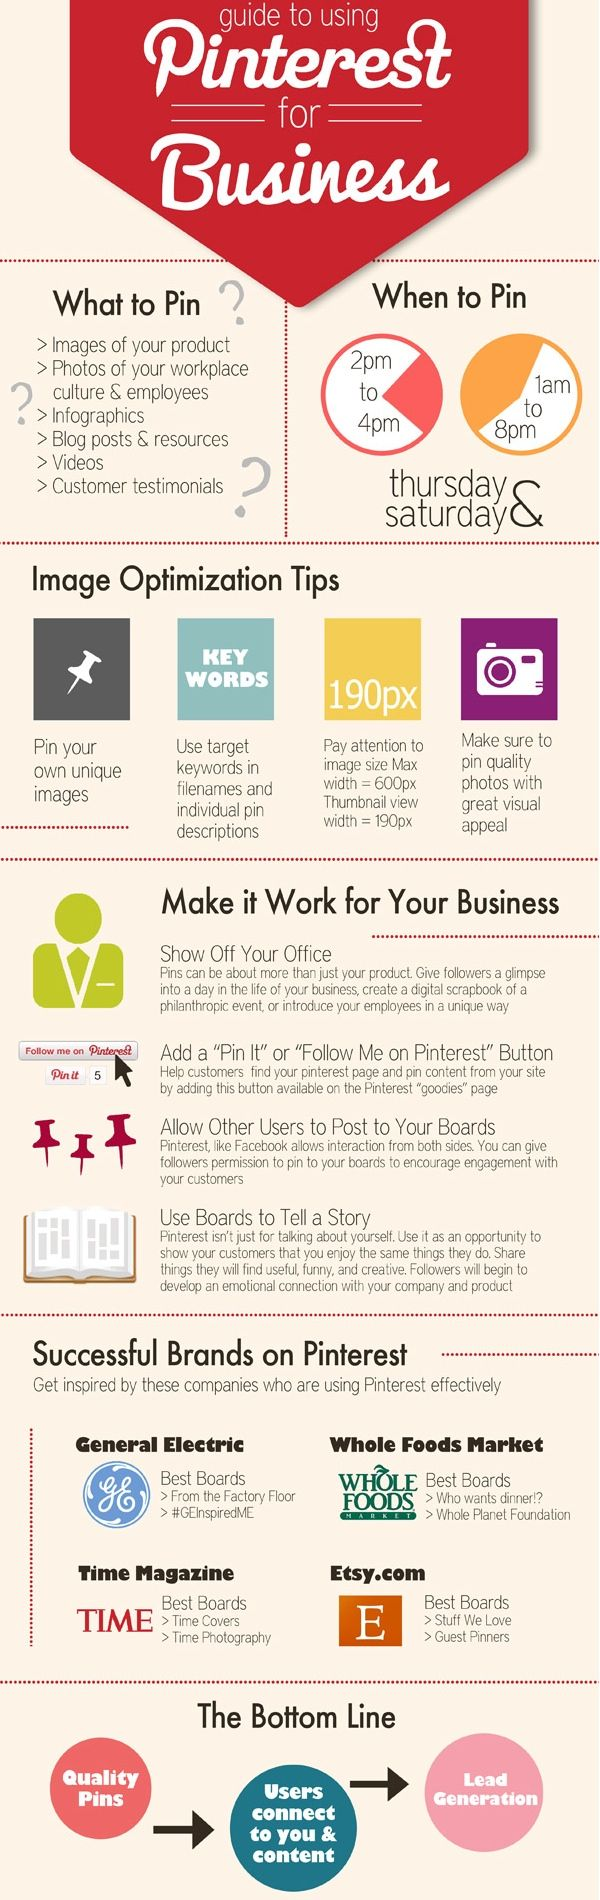 Guide to Using Pinterest for Business!!! I'm going to need this in a few months:)) can't wait to start my new East Coast bikini line!!!! My other line did so well on the West Coast.